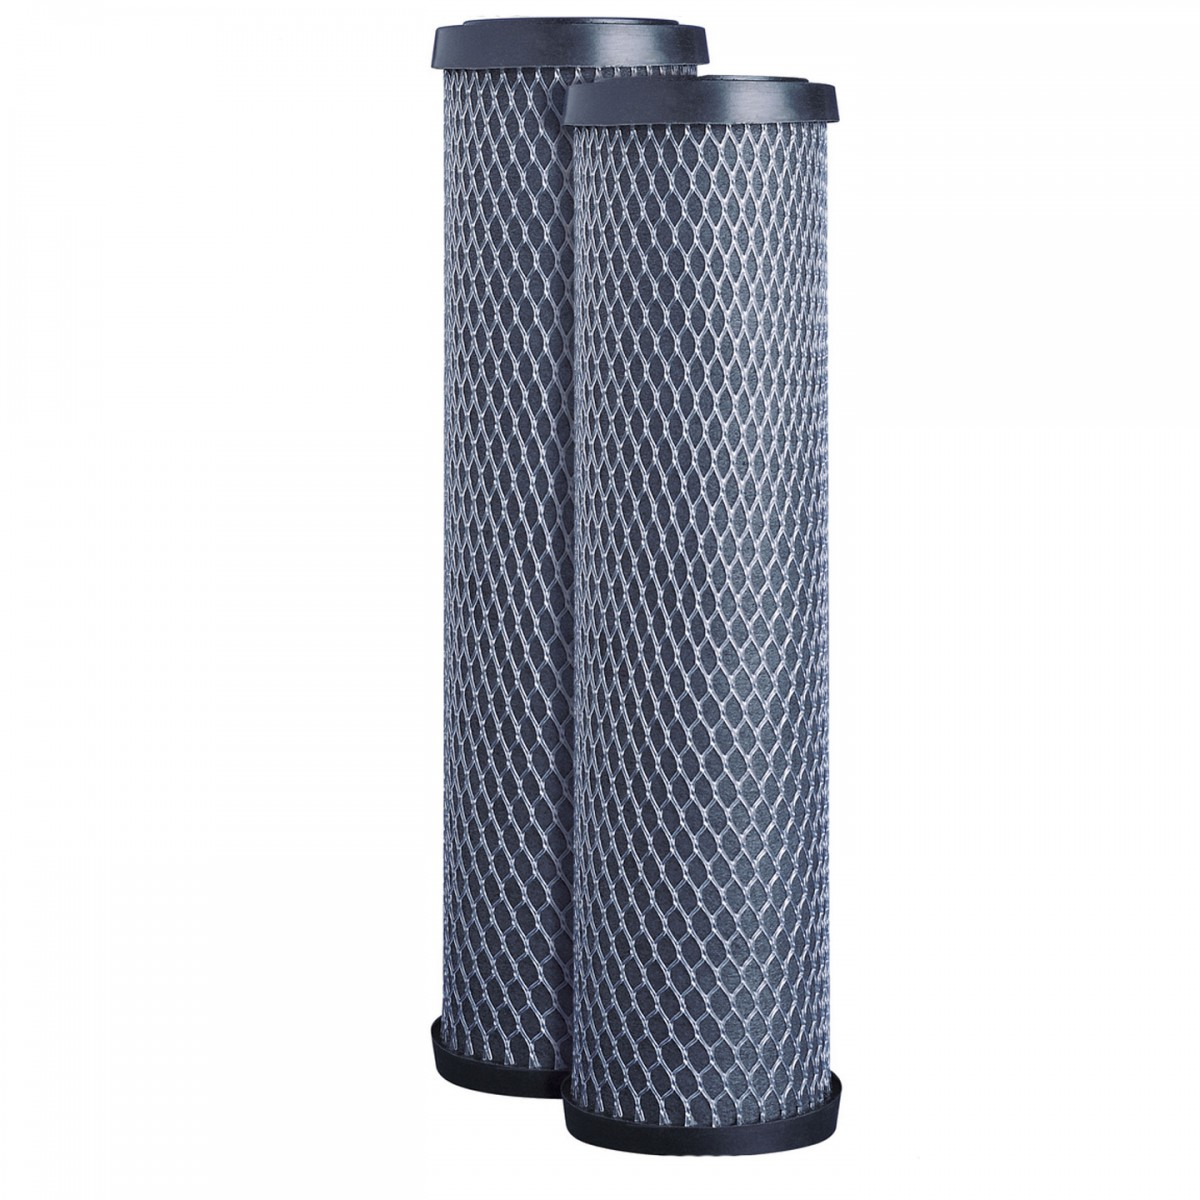 GE FXWTC Water Filters and GE SmartWater FXWTC Sediment Water Filter